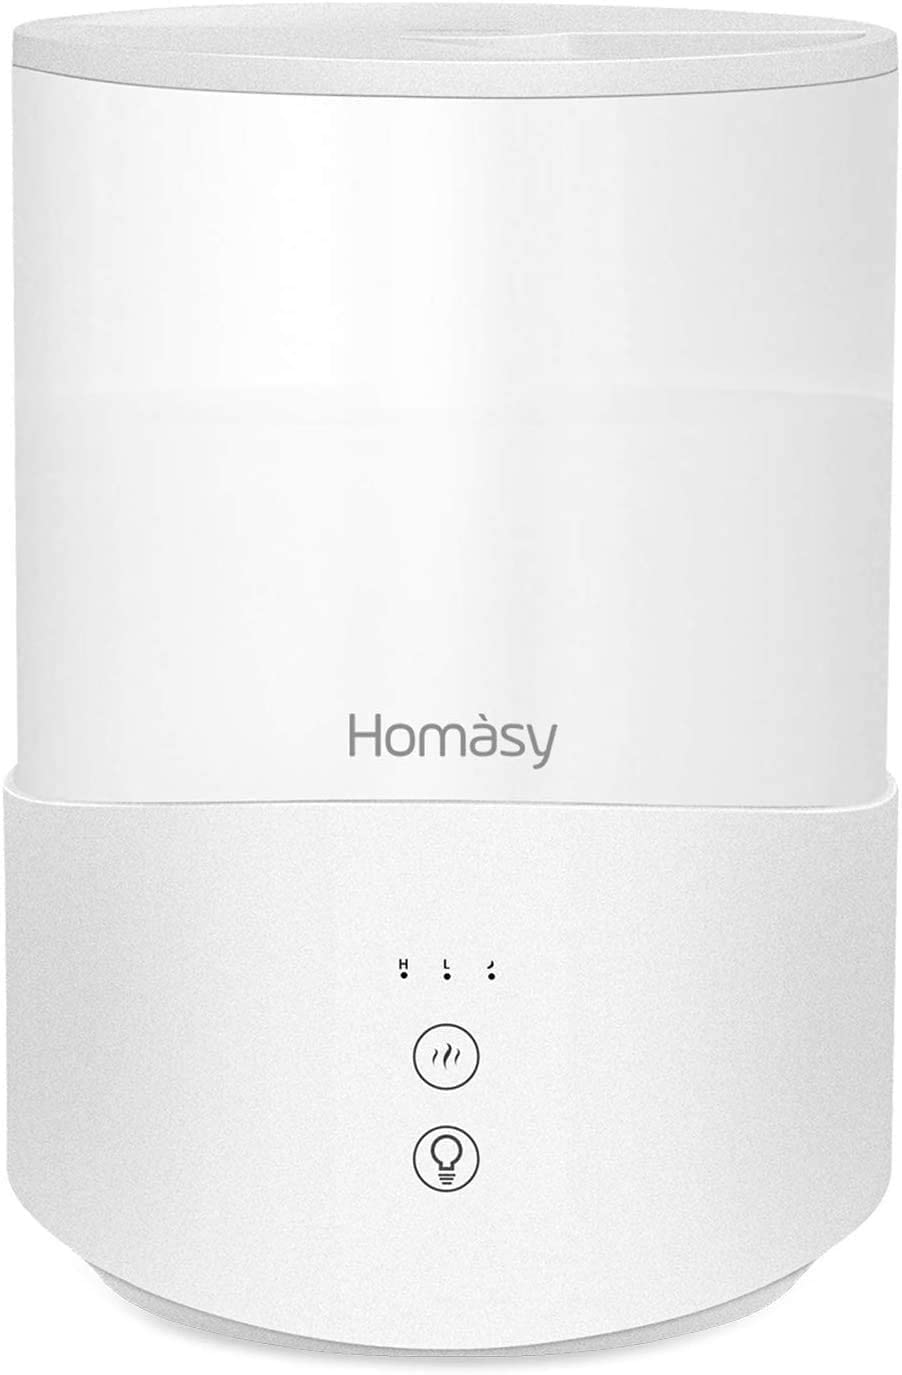 Humidifier for Homasy